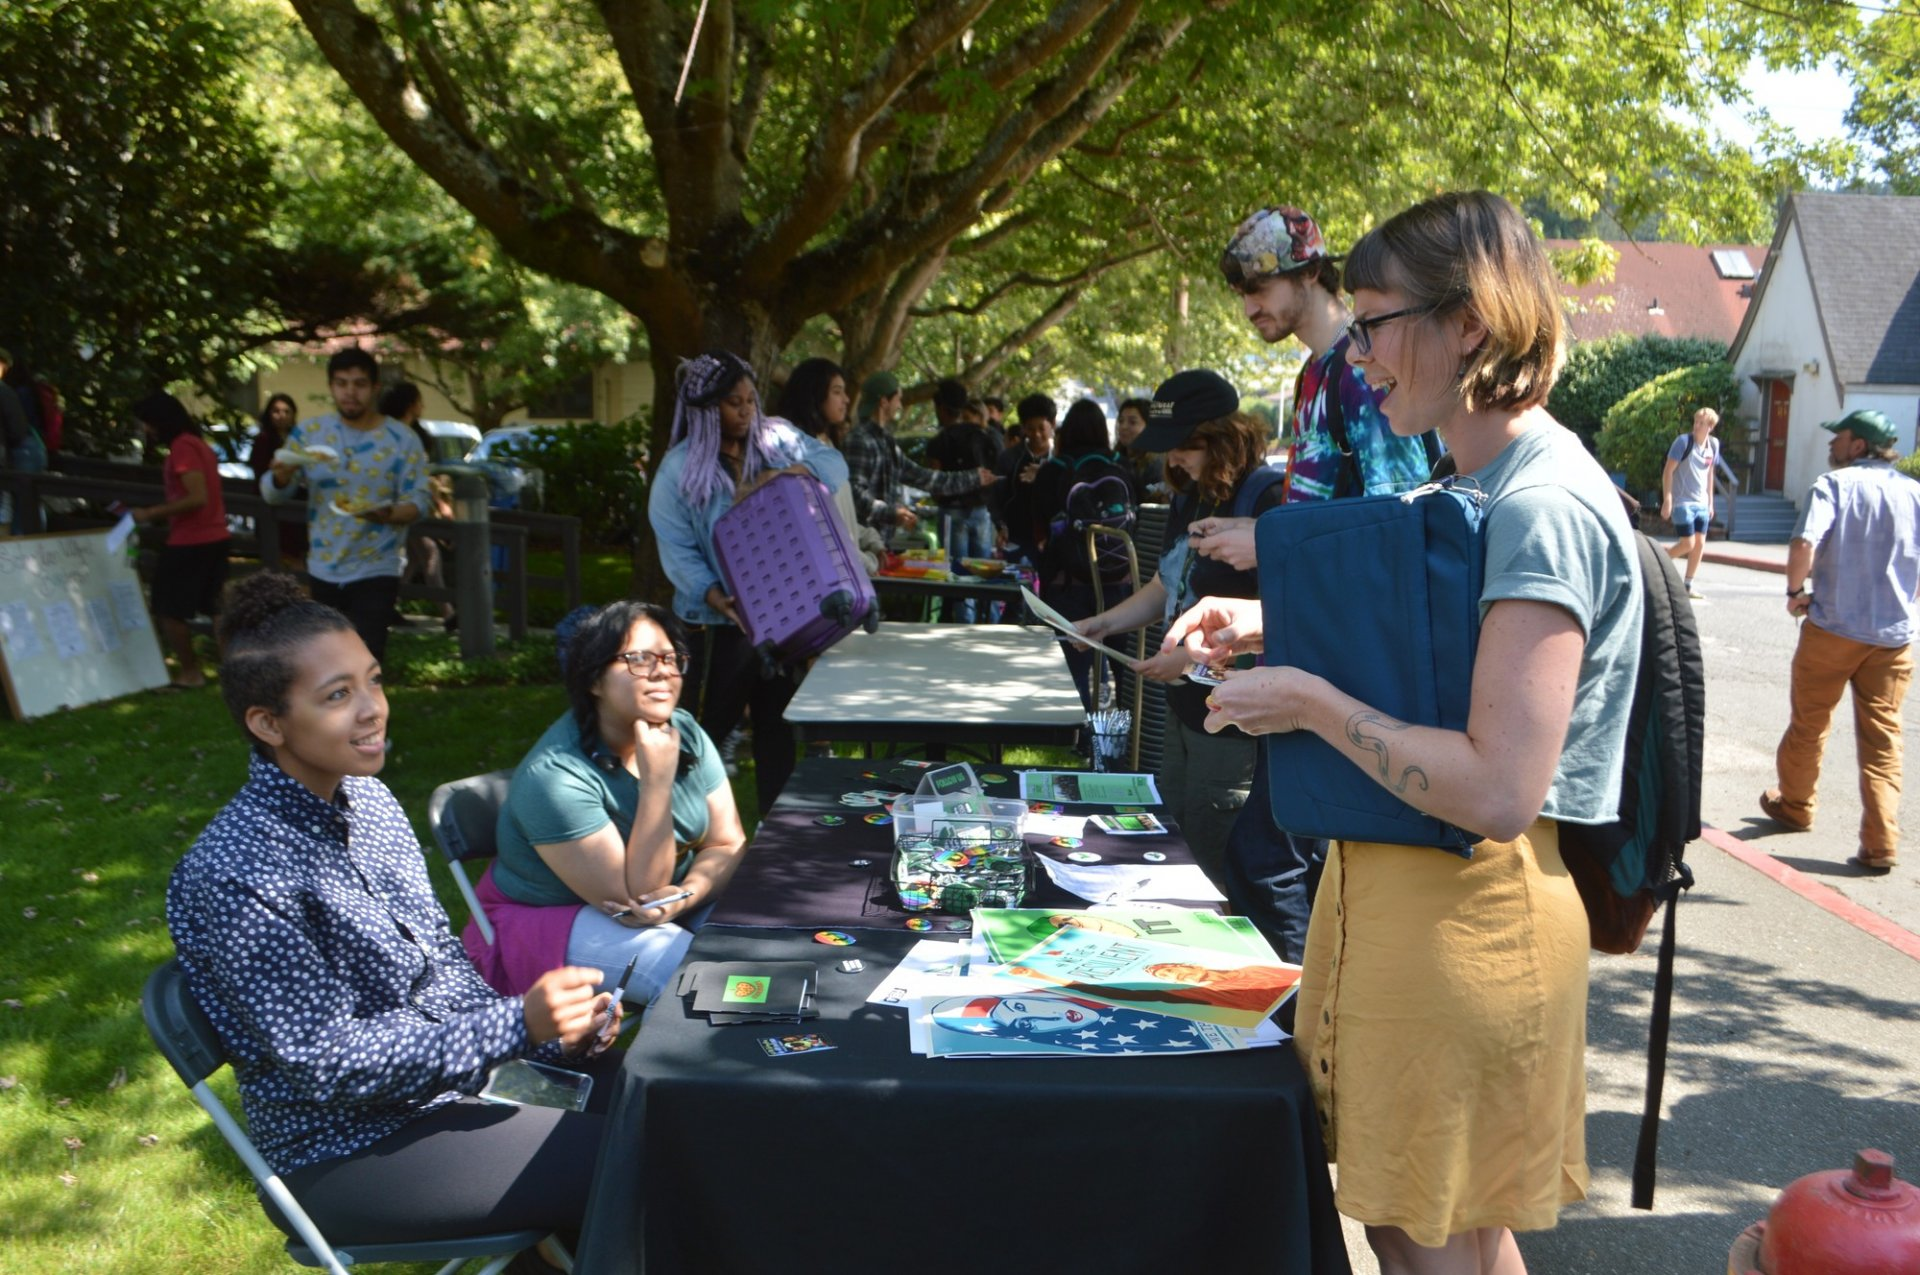 The MCC open house enabled students to learn more about university programs and projects, such as Check It. Photo credit: Lora Neshovska